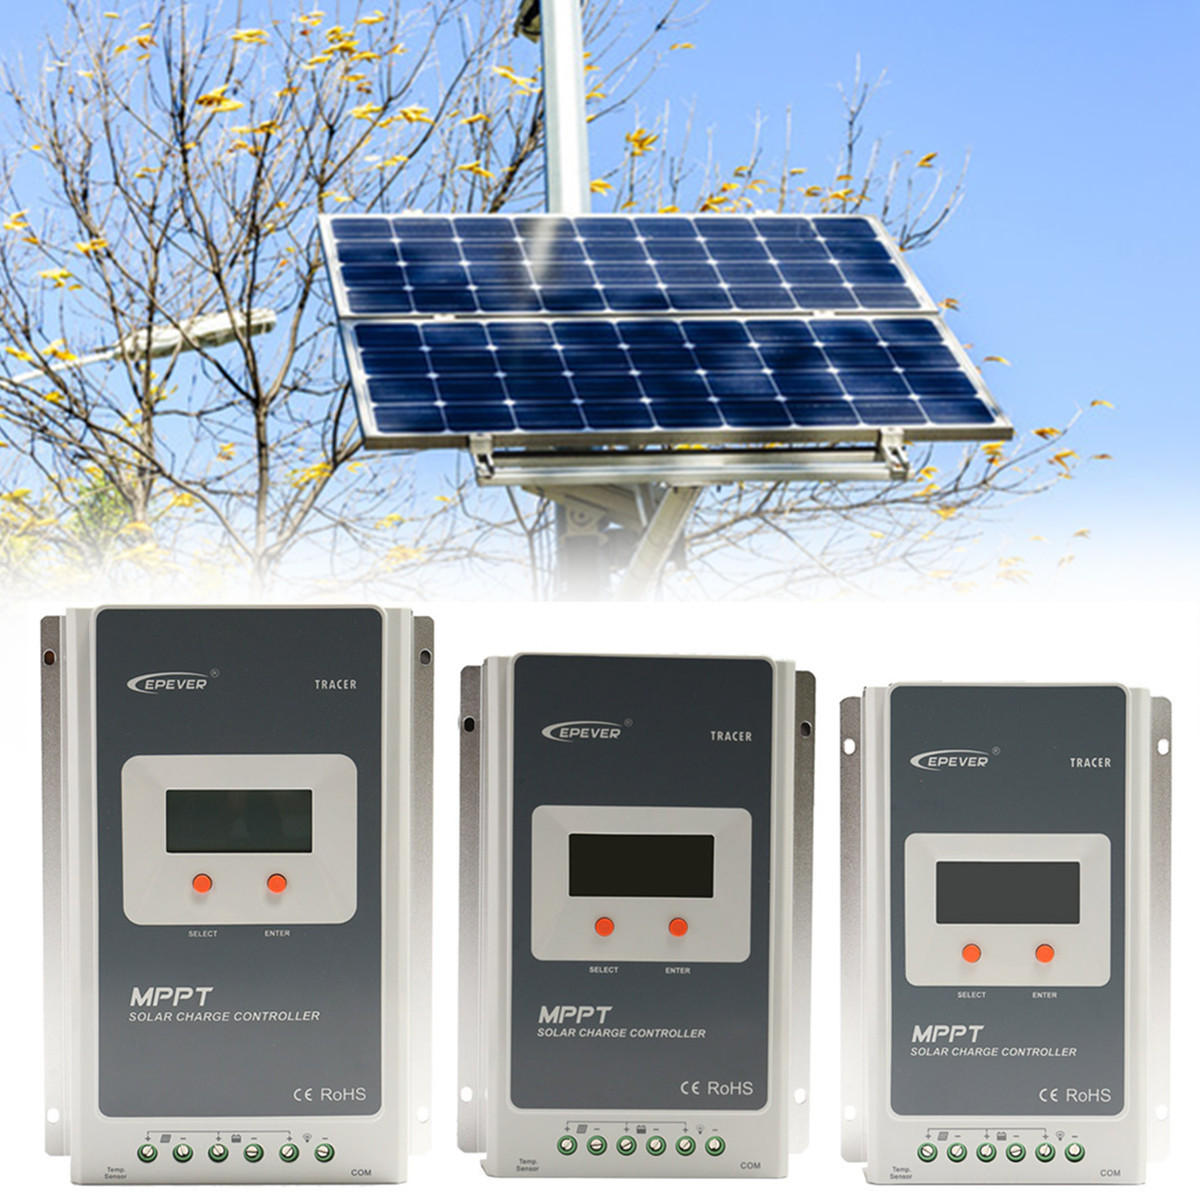 Epever Tracer LCD Diaplay 10A/20A/30A/40A 12V/24V Auto MPPT Solar Charge Controller Connect Solar Panel Battery Solar Regulator - 2